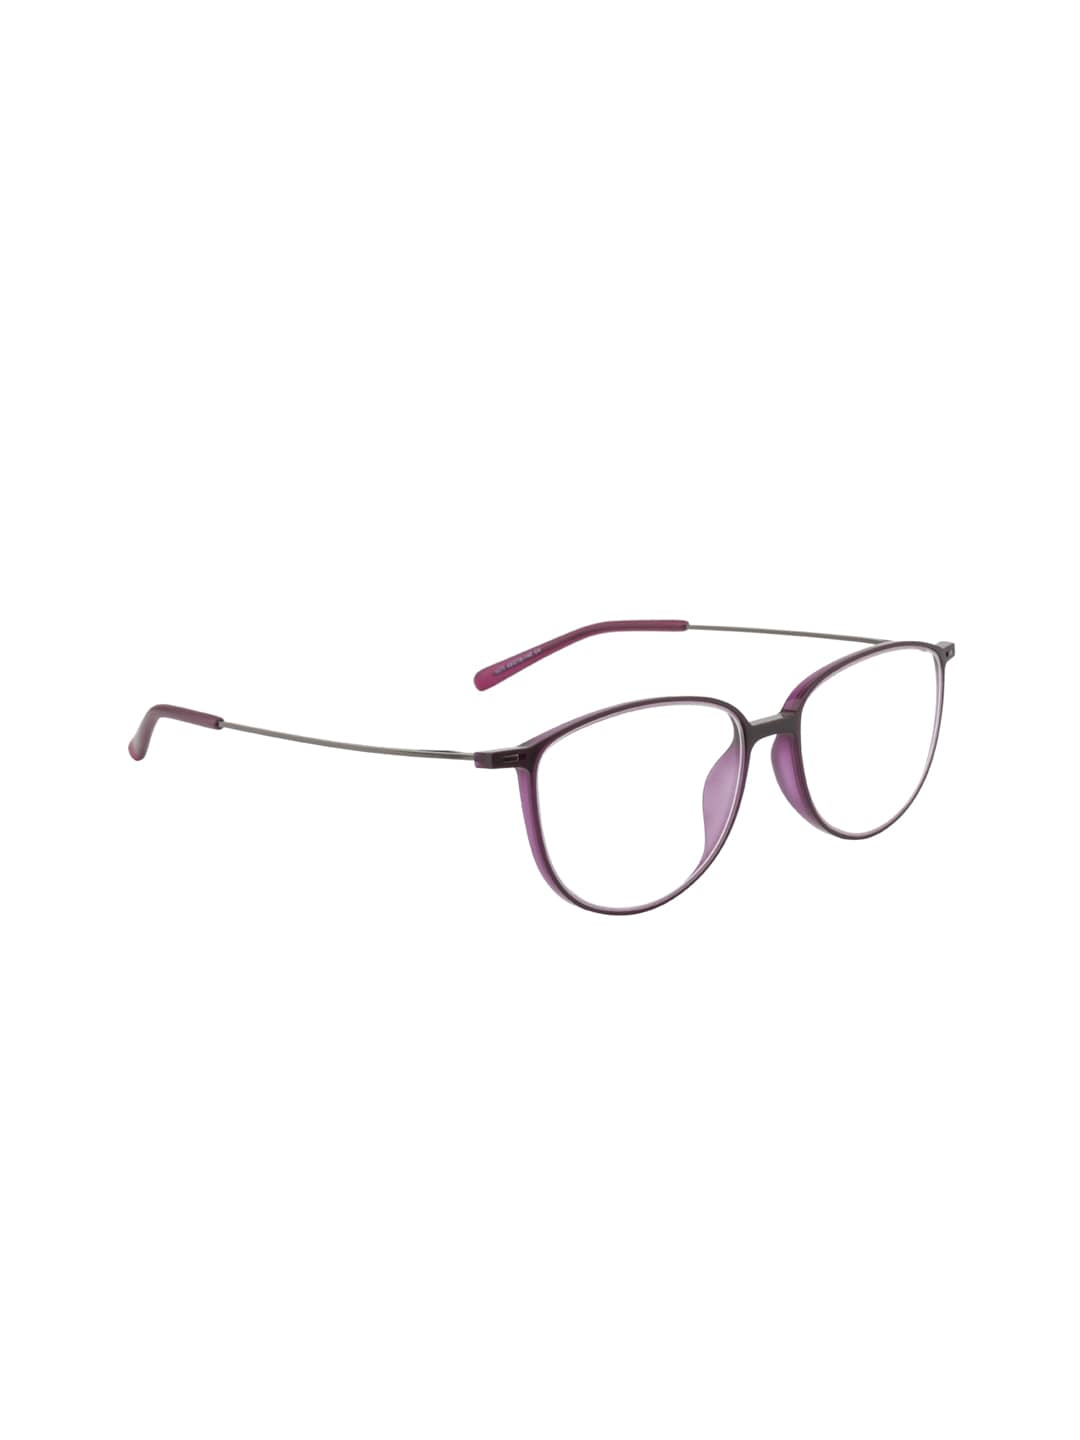 Frames - Buy Frames online in India